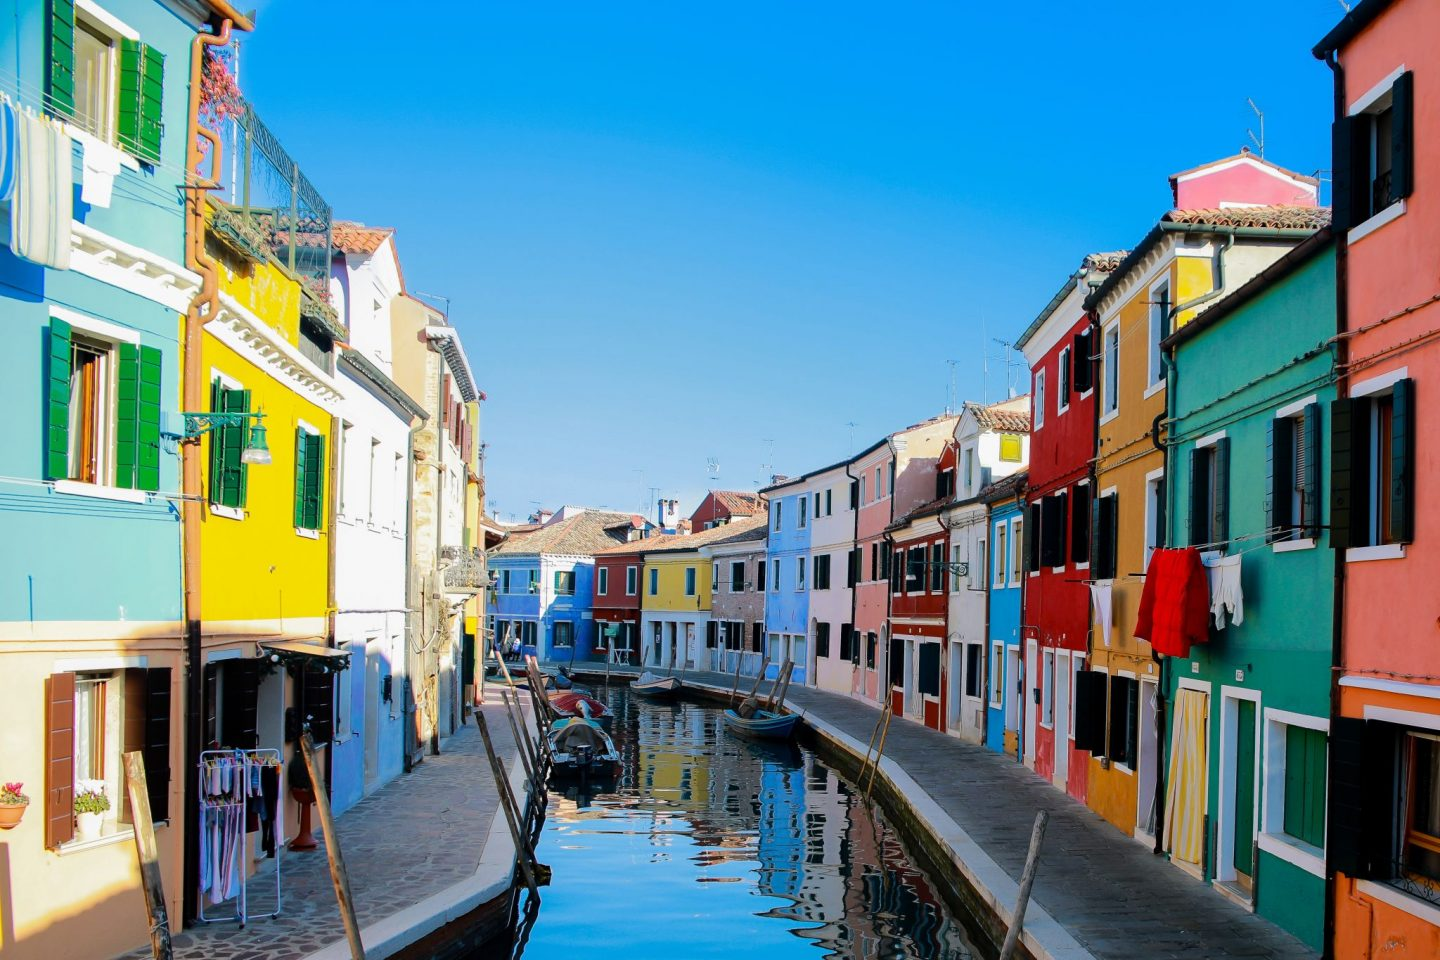 Burano, Venice, Italy is one of the world's most colourful cities